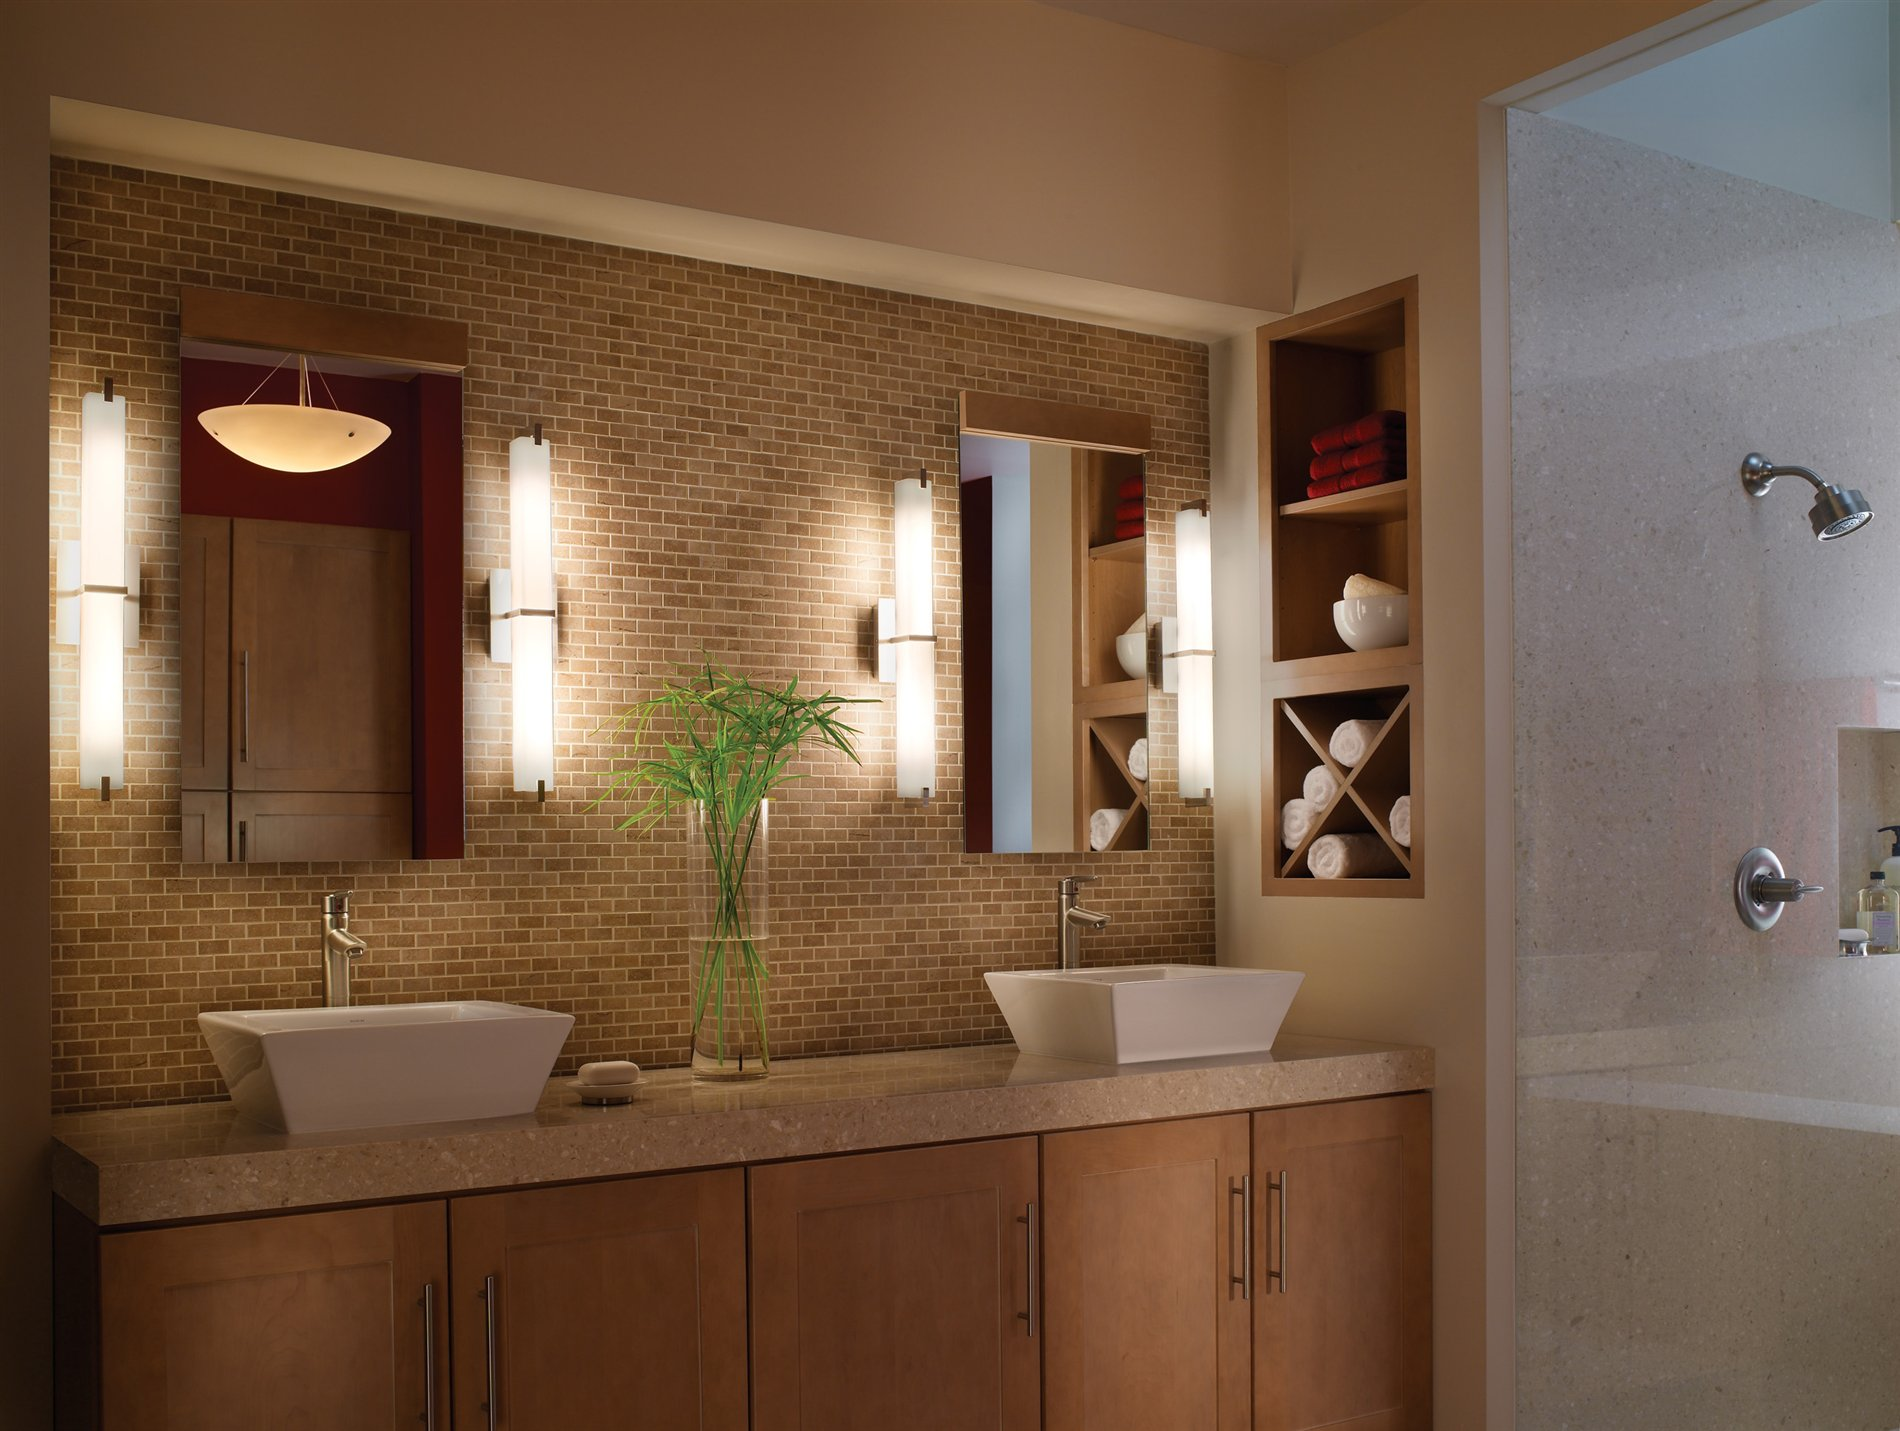 Bathroom Lighting Side Of Mirror contemporary bath lighting, modern bathroom light fixtures